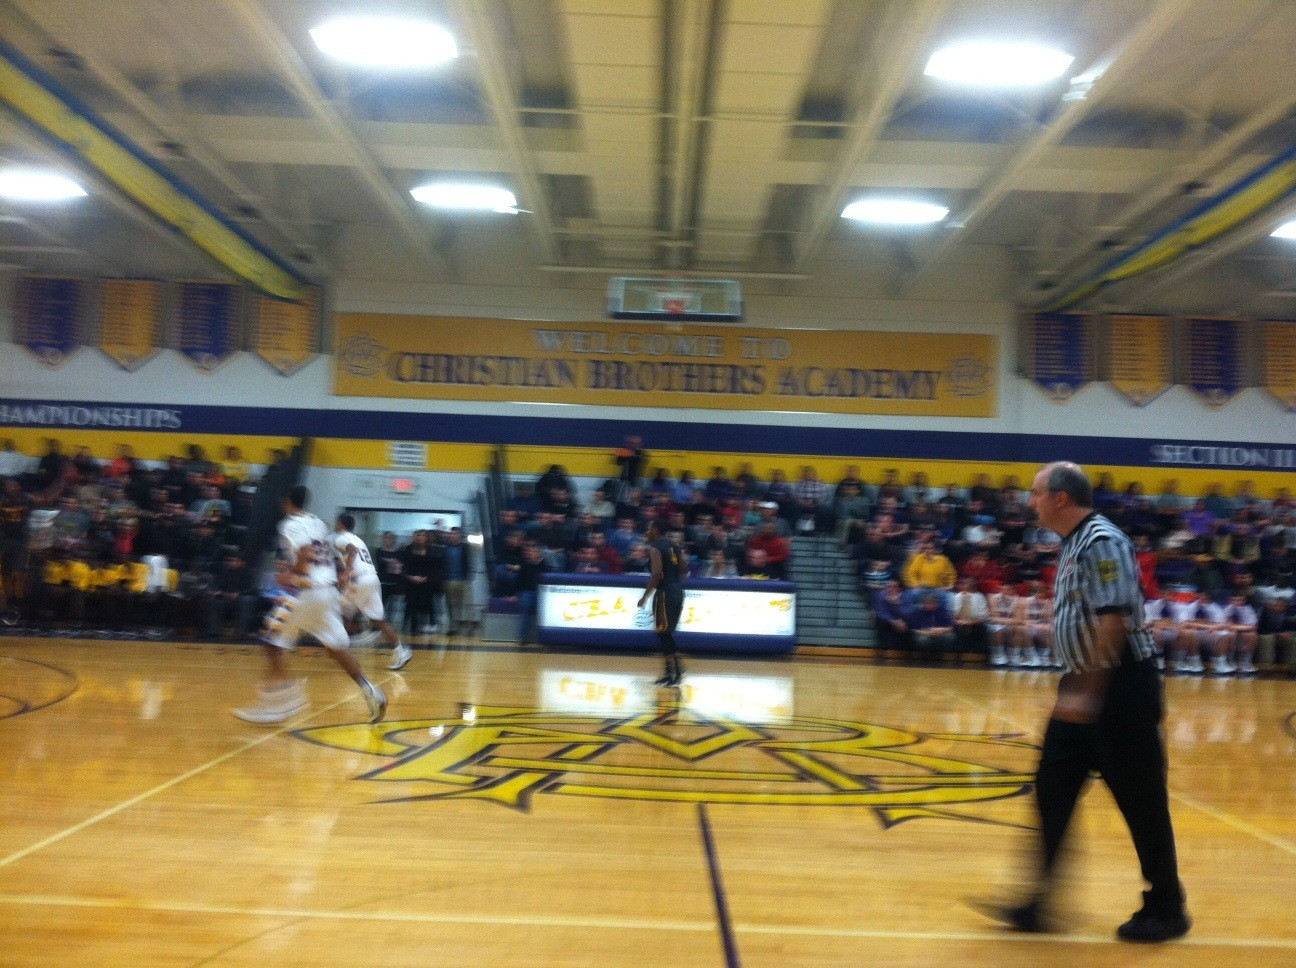 CBA Basketball game, Dec. 30, Chris Bednarski, ref, in front